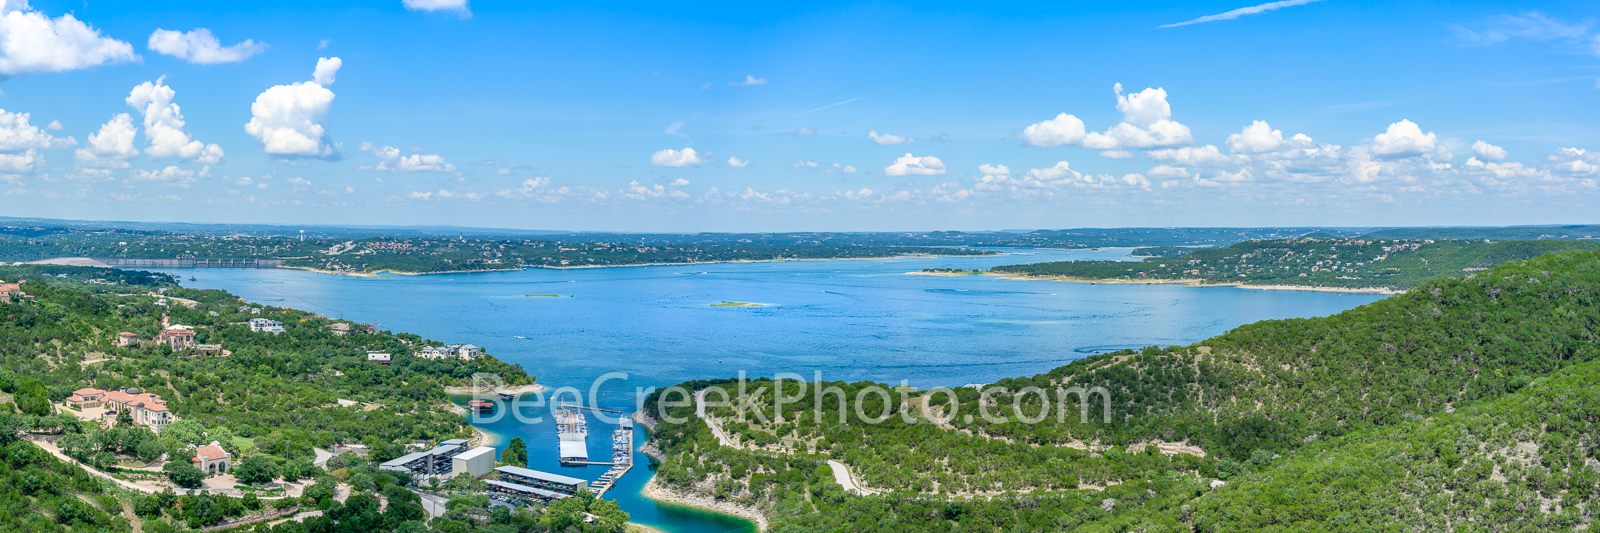 Lake Travis Aerial View Pano - This was our latest aerial view of lake travis during a beautiful blue sky day. We wanted to capture...